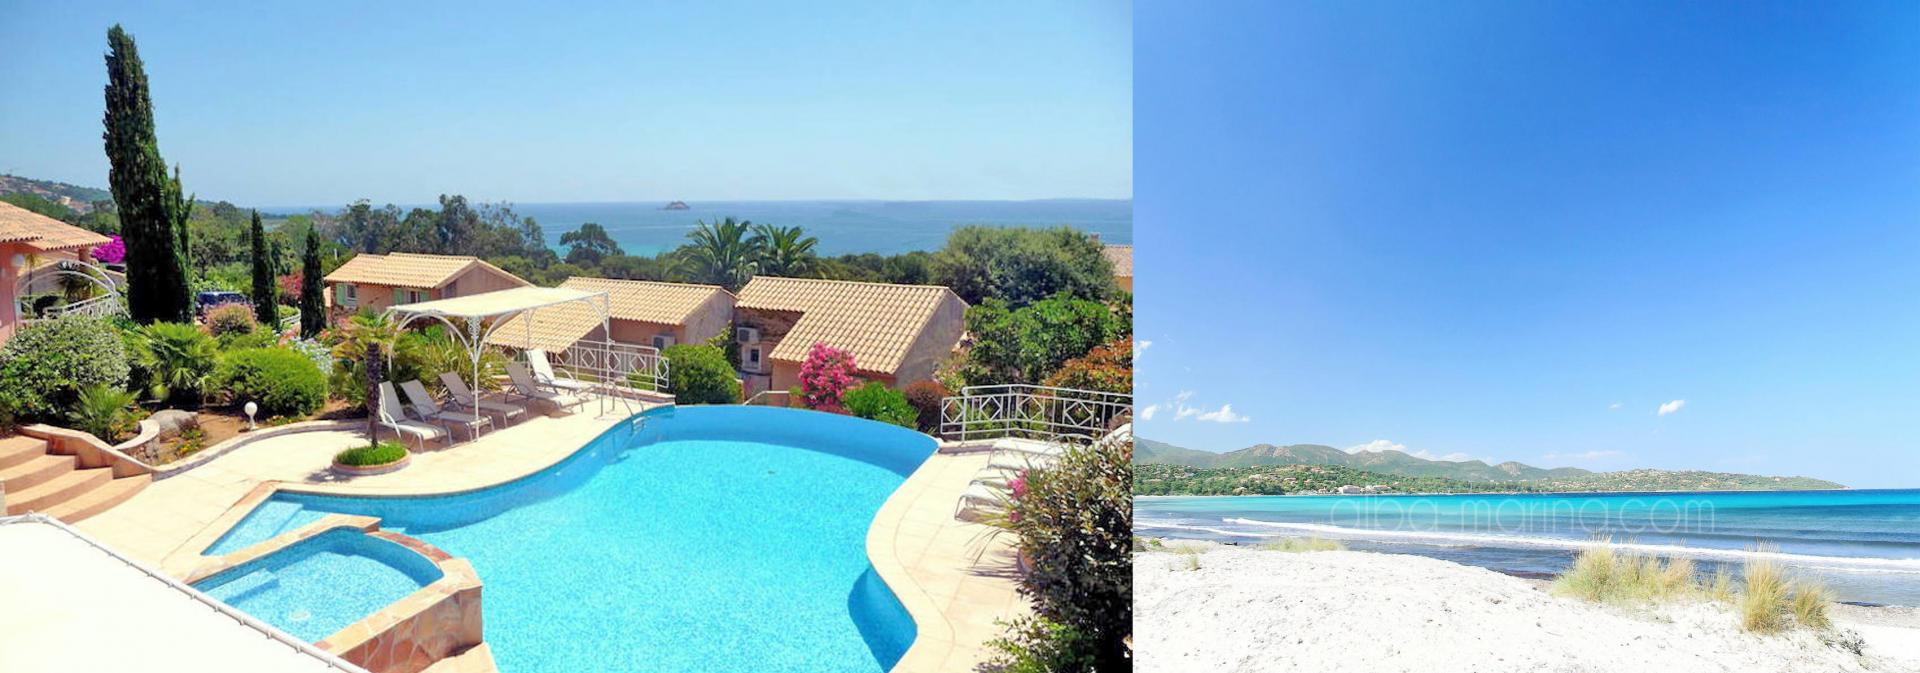 Residence vacances corse